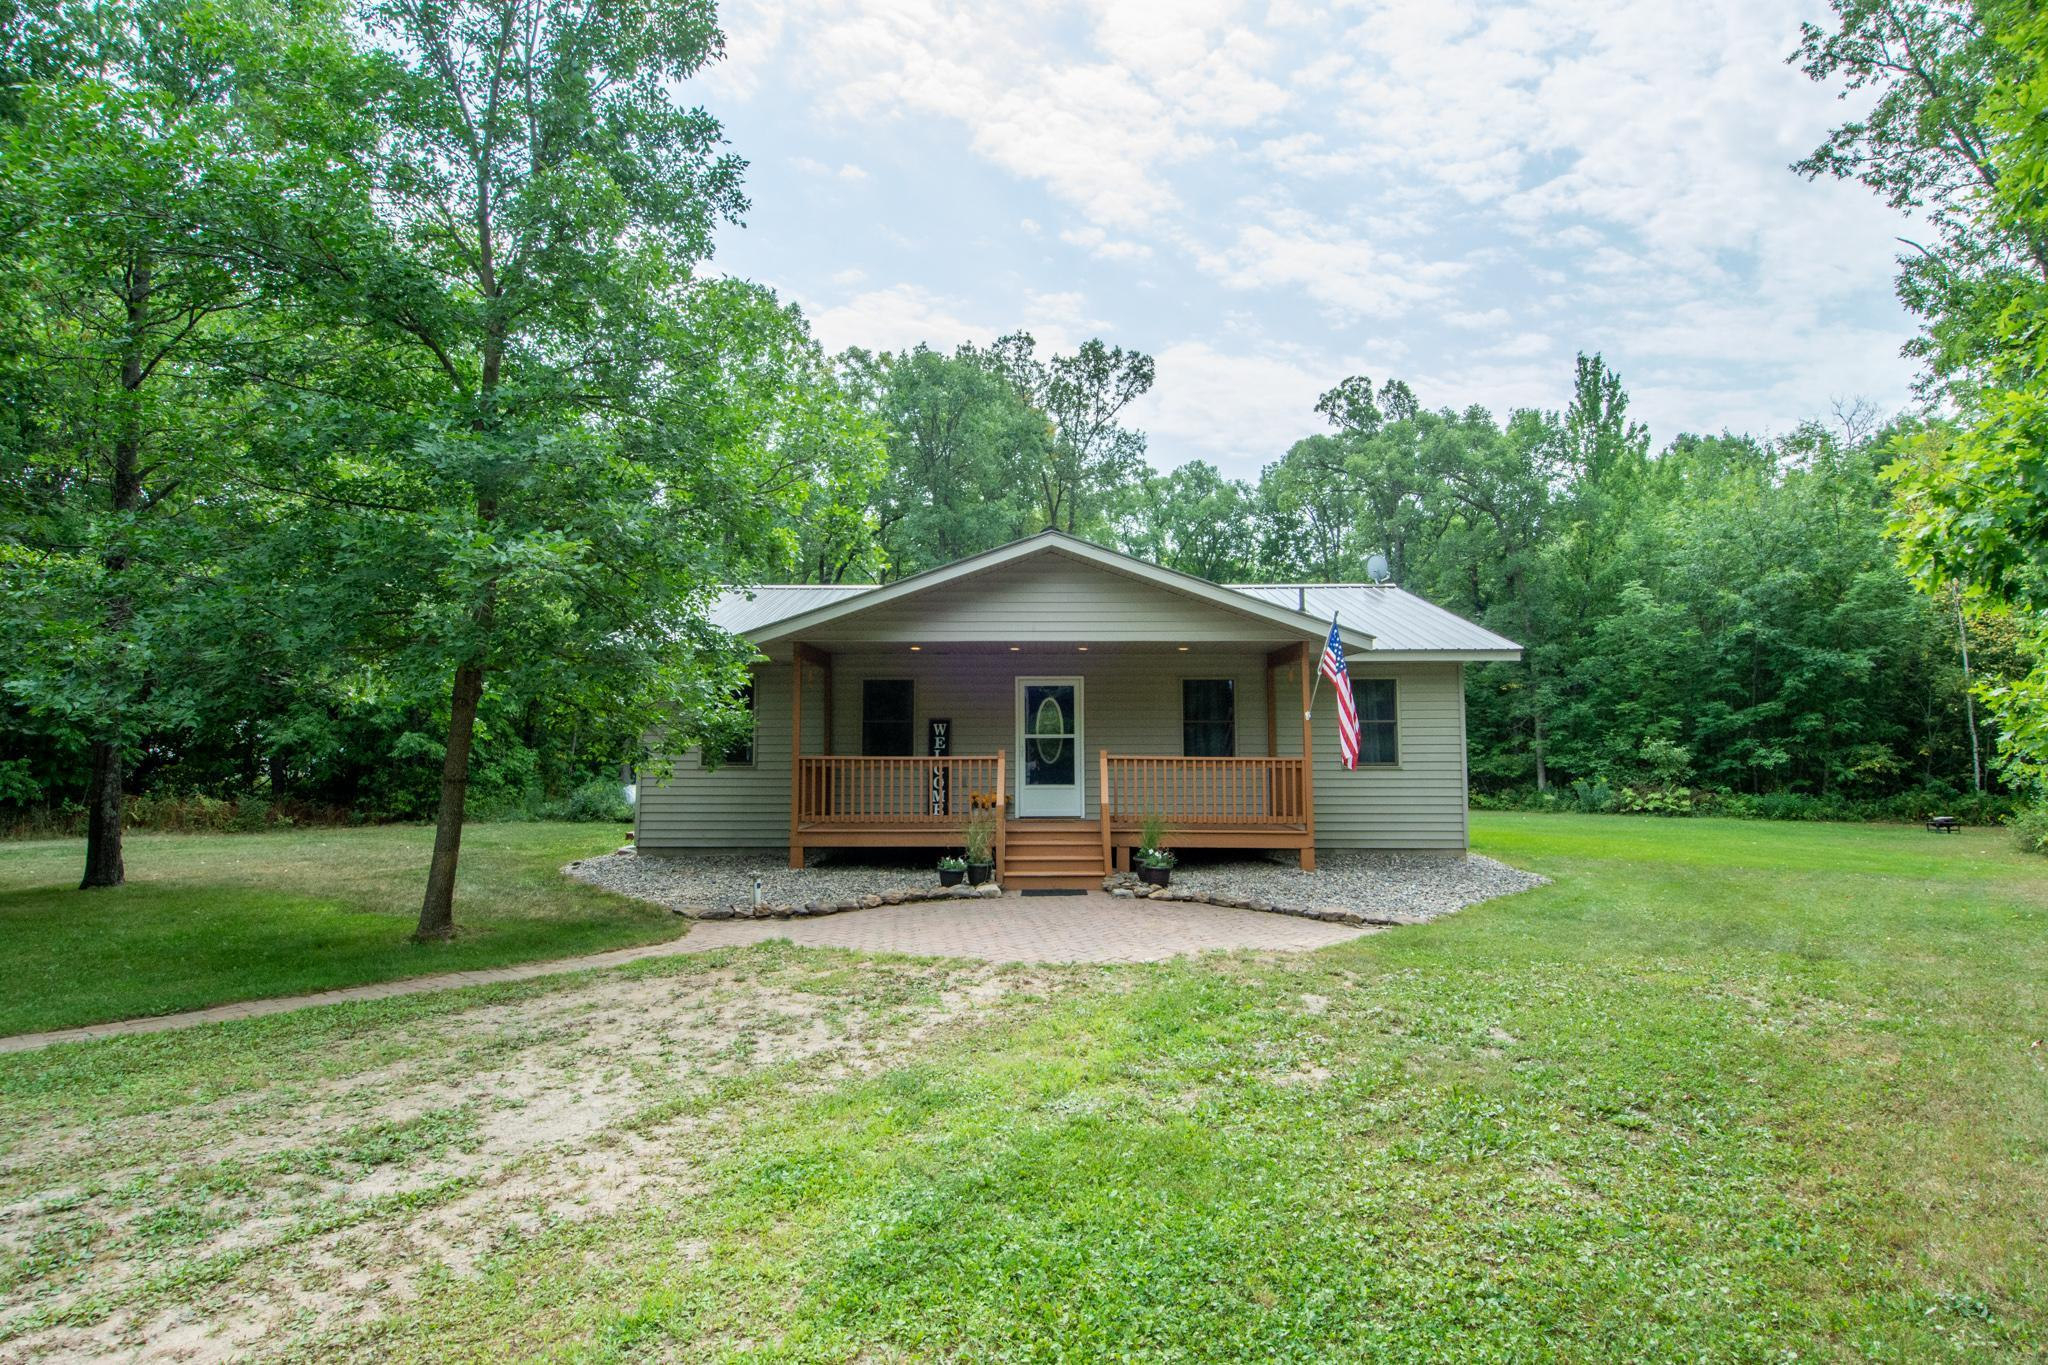 Want to be nestled in the woods on 5 acres? This is your opportunity!! Outside this home features a new septic system that was installed in 2018, a 26x31 garage, covered front porch/deck space, maintenance free exterior siding and roof on both the garage and the house, nicely wooded lot and located on a paved road! Inside this home feature a kitchen with hickory cabinets and breakfast bar, nice dining room space, main floor laundry, living room, a master suite with walk in closet and jetted tub in the master bath and main level features an additional two bedrooms. Lower level features a massive family room space, full bath, storage room and utility room.